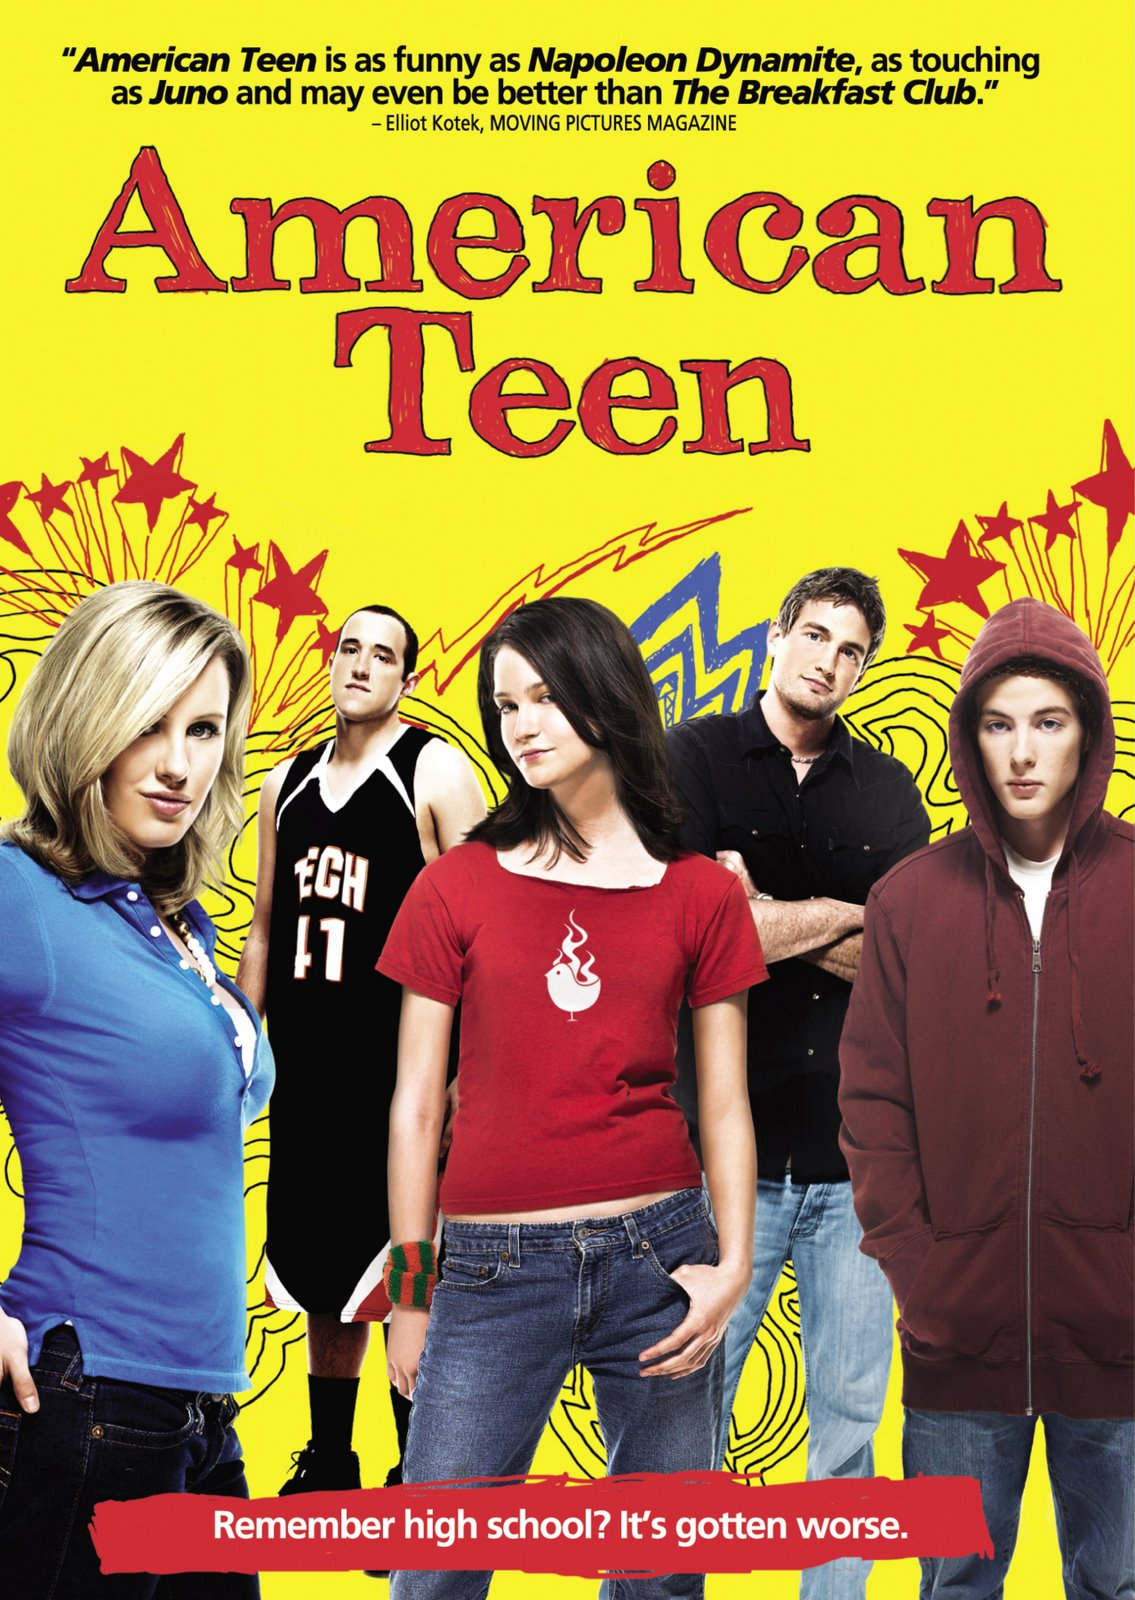 American Teen - Available on DVD/Blu-Ray, reviews, trailers - Flicks.